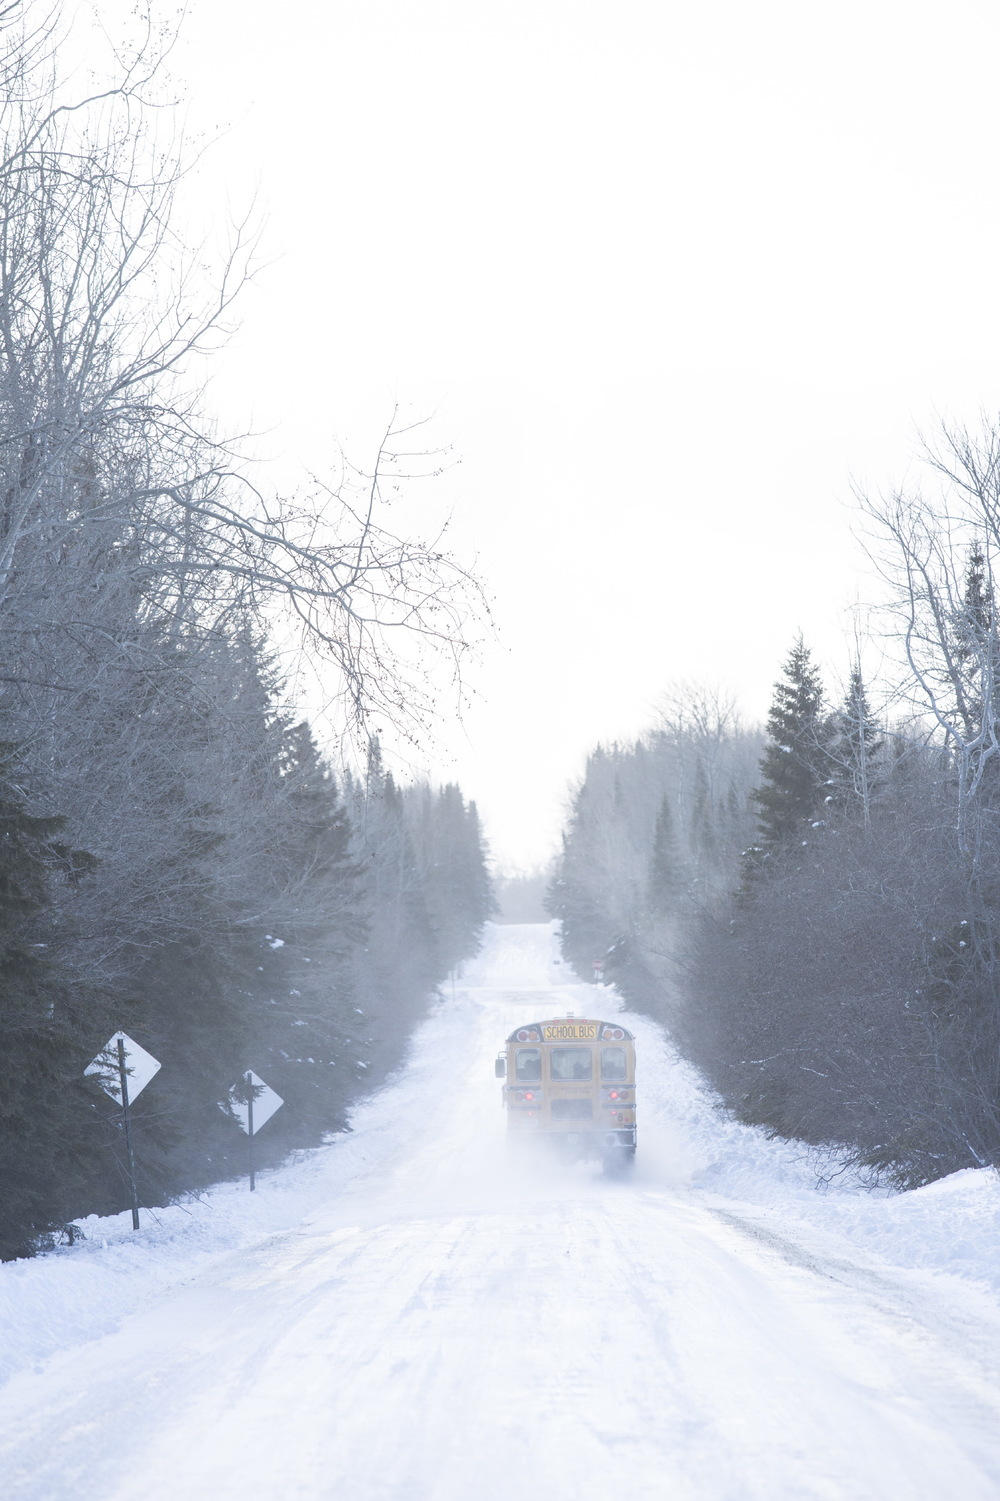 Toughest Bus Route in America for International Bus